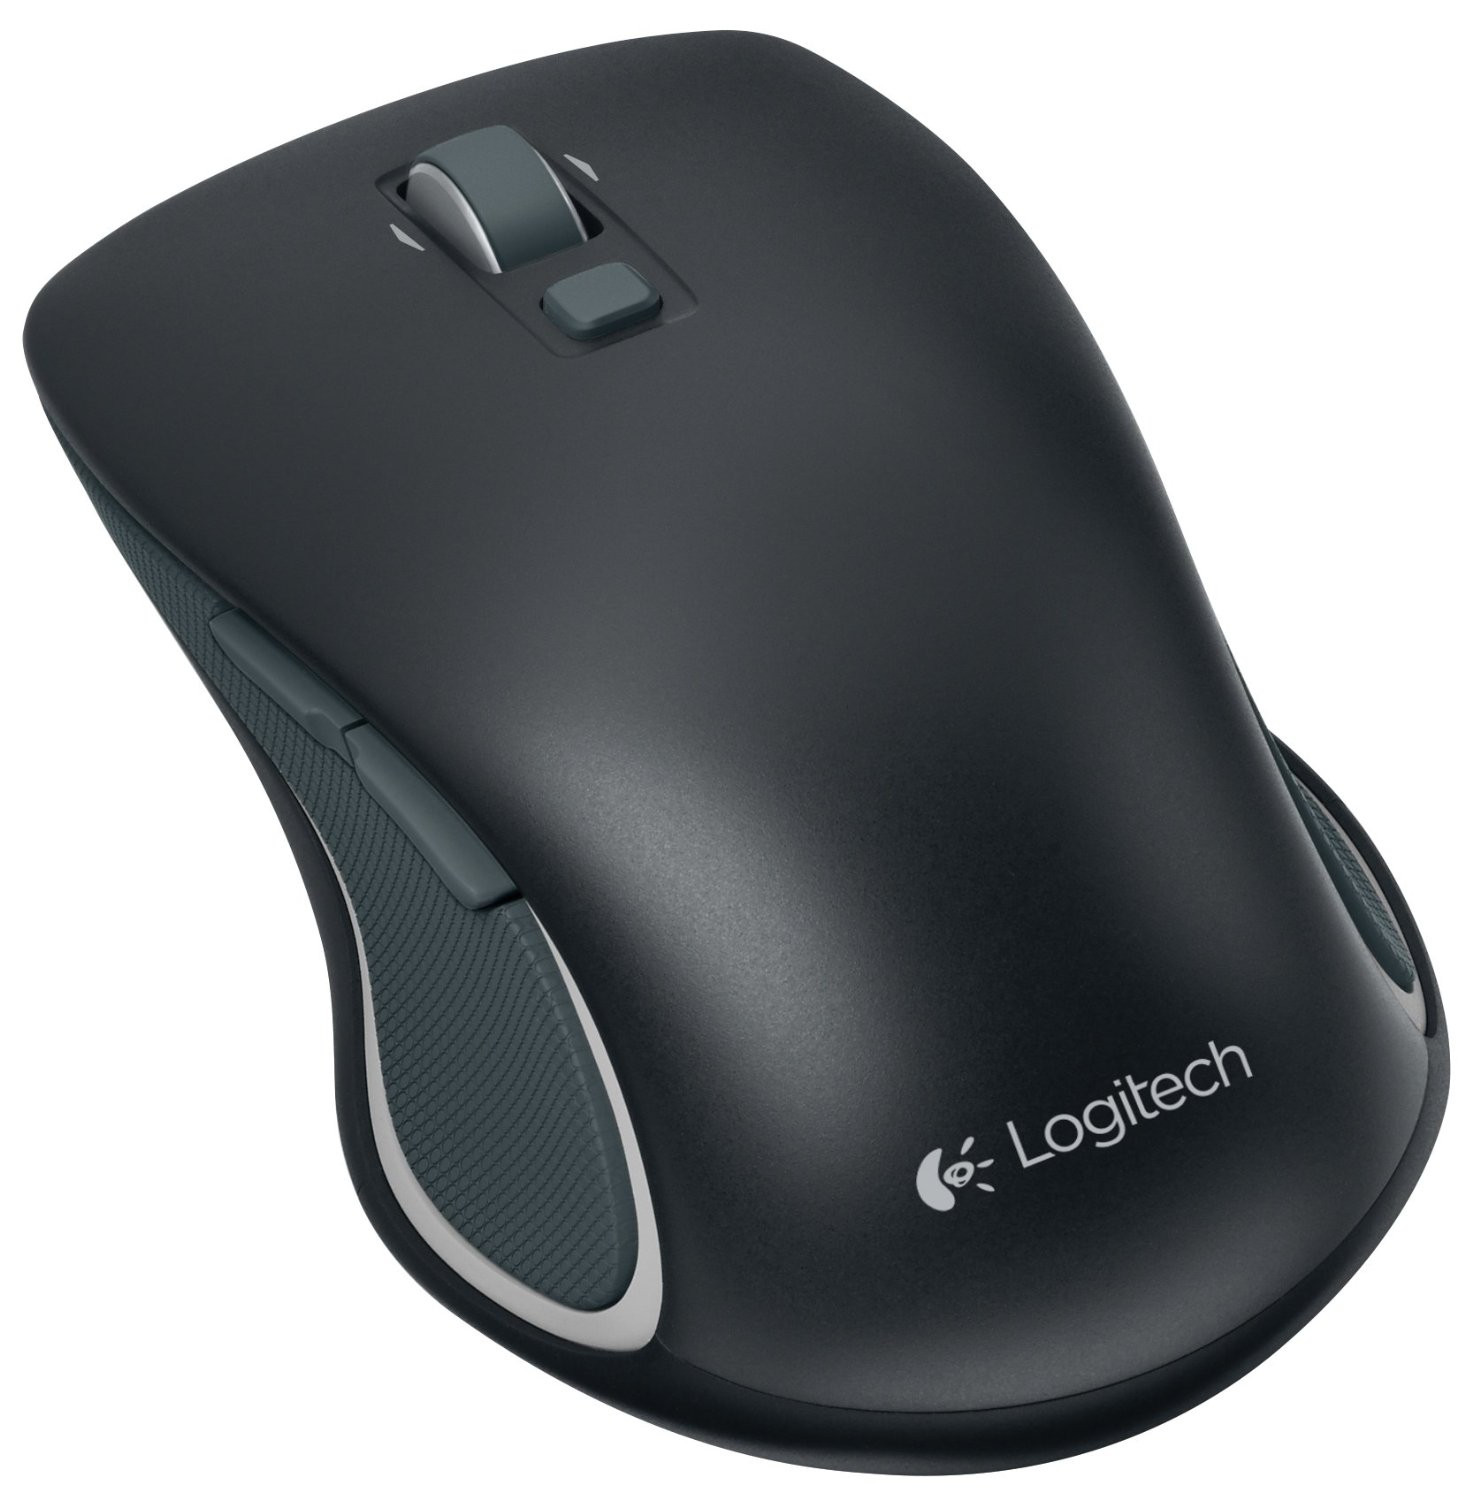 Logitech Wireless Mouse M560 logitech wireless mouse m560